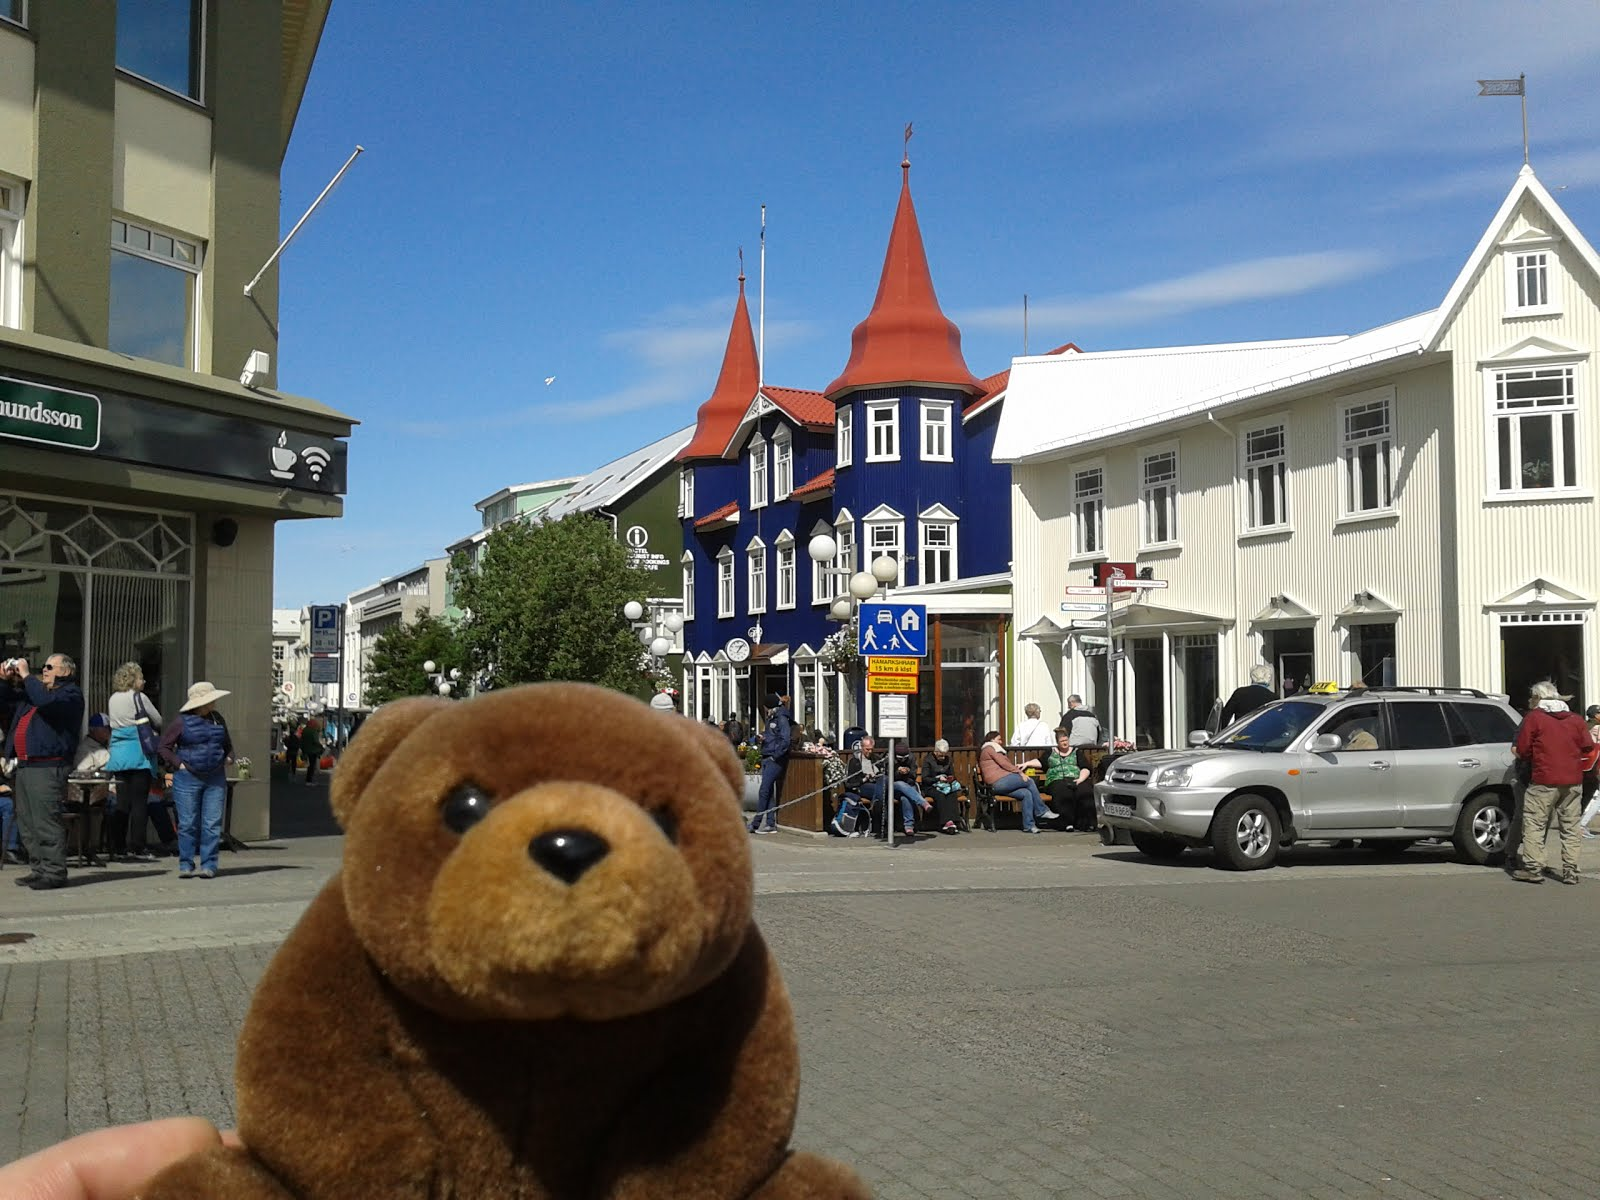 Teddy Bear in Akureyri, Iceland